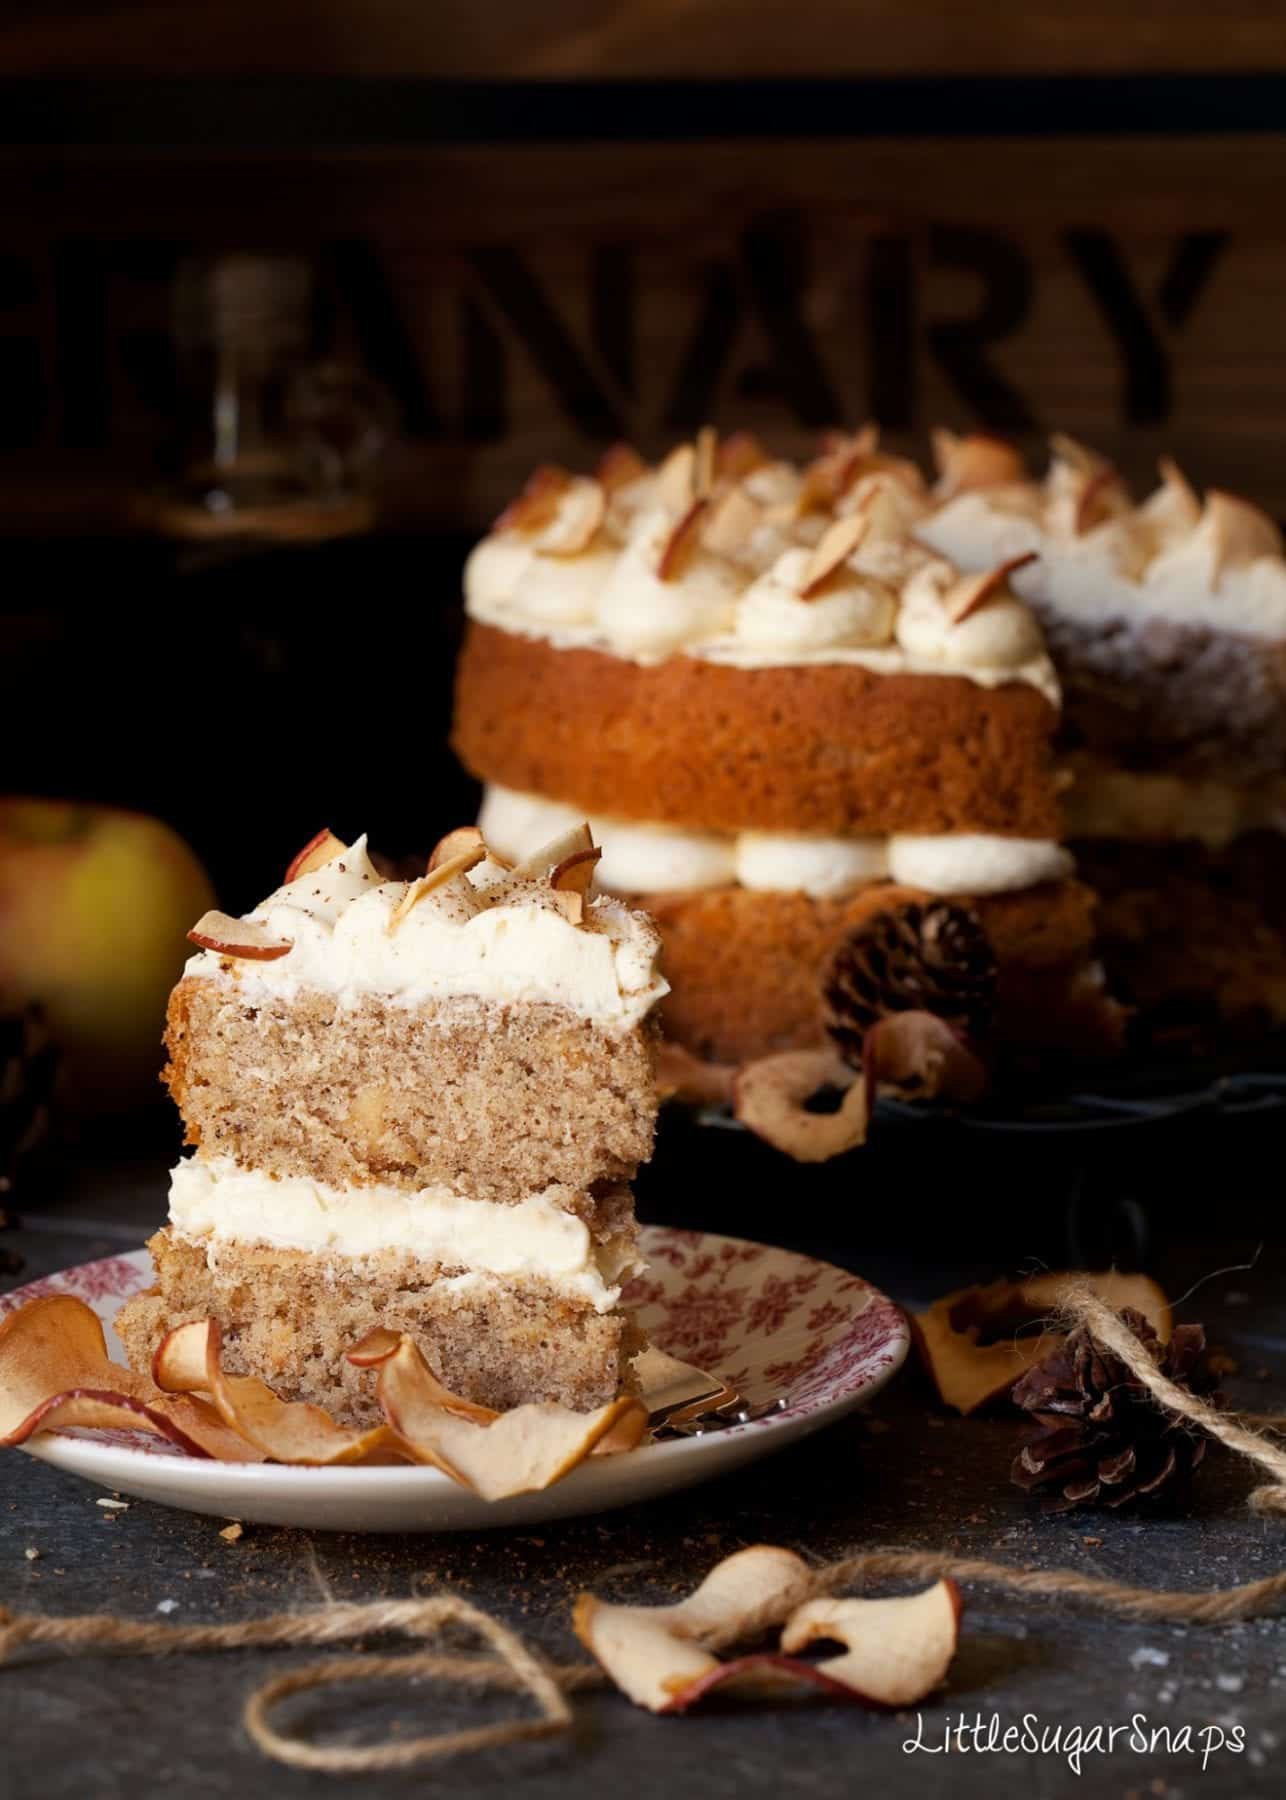 a slice of Apple cinnamon Cake with buttercream and dried apple on a red side plate. Sliced into Layer cake in the background